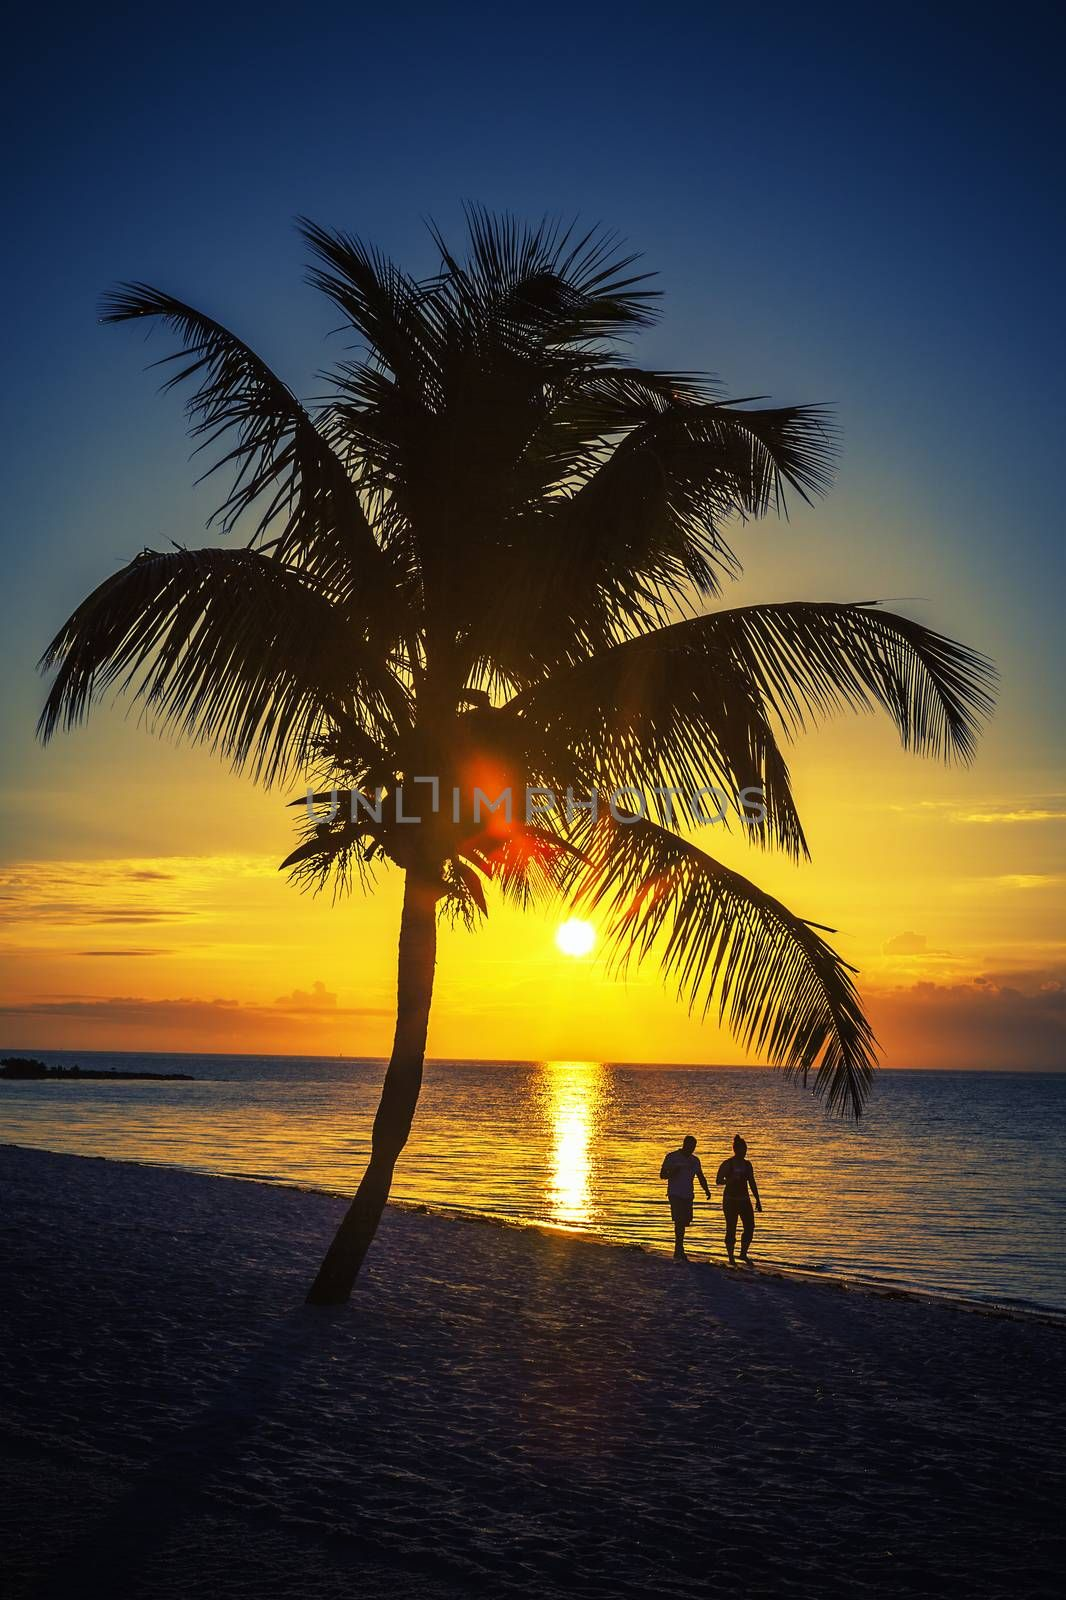 View of palm tree and lovers on a beach at sunset, Key West, USA